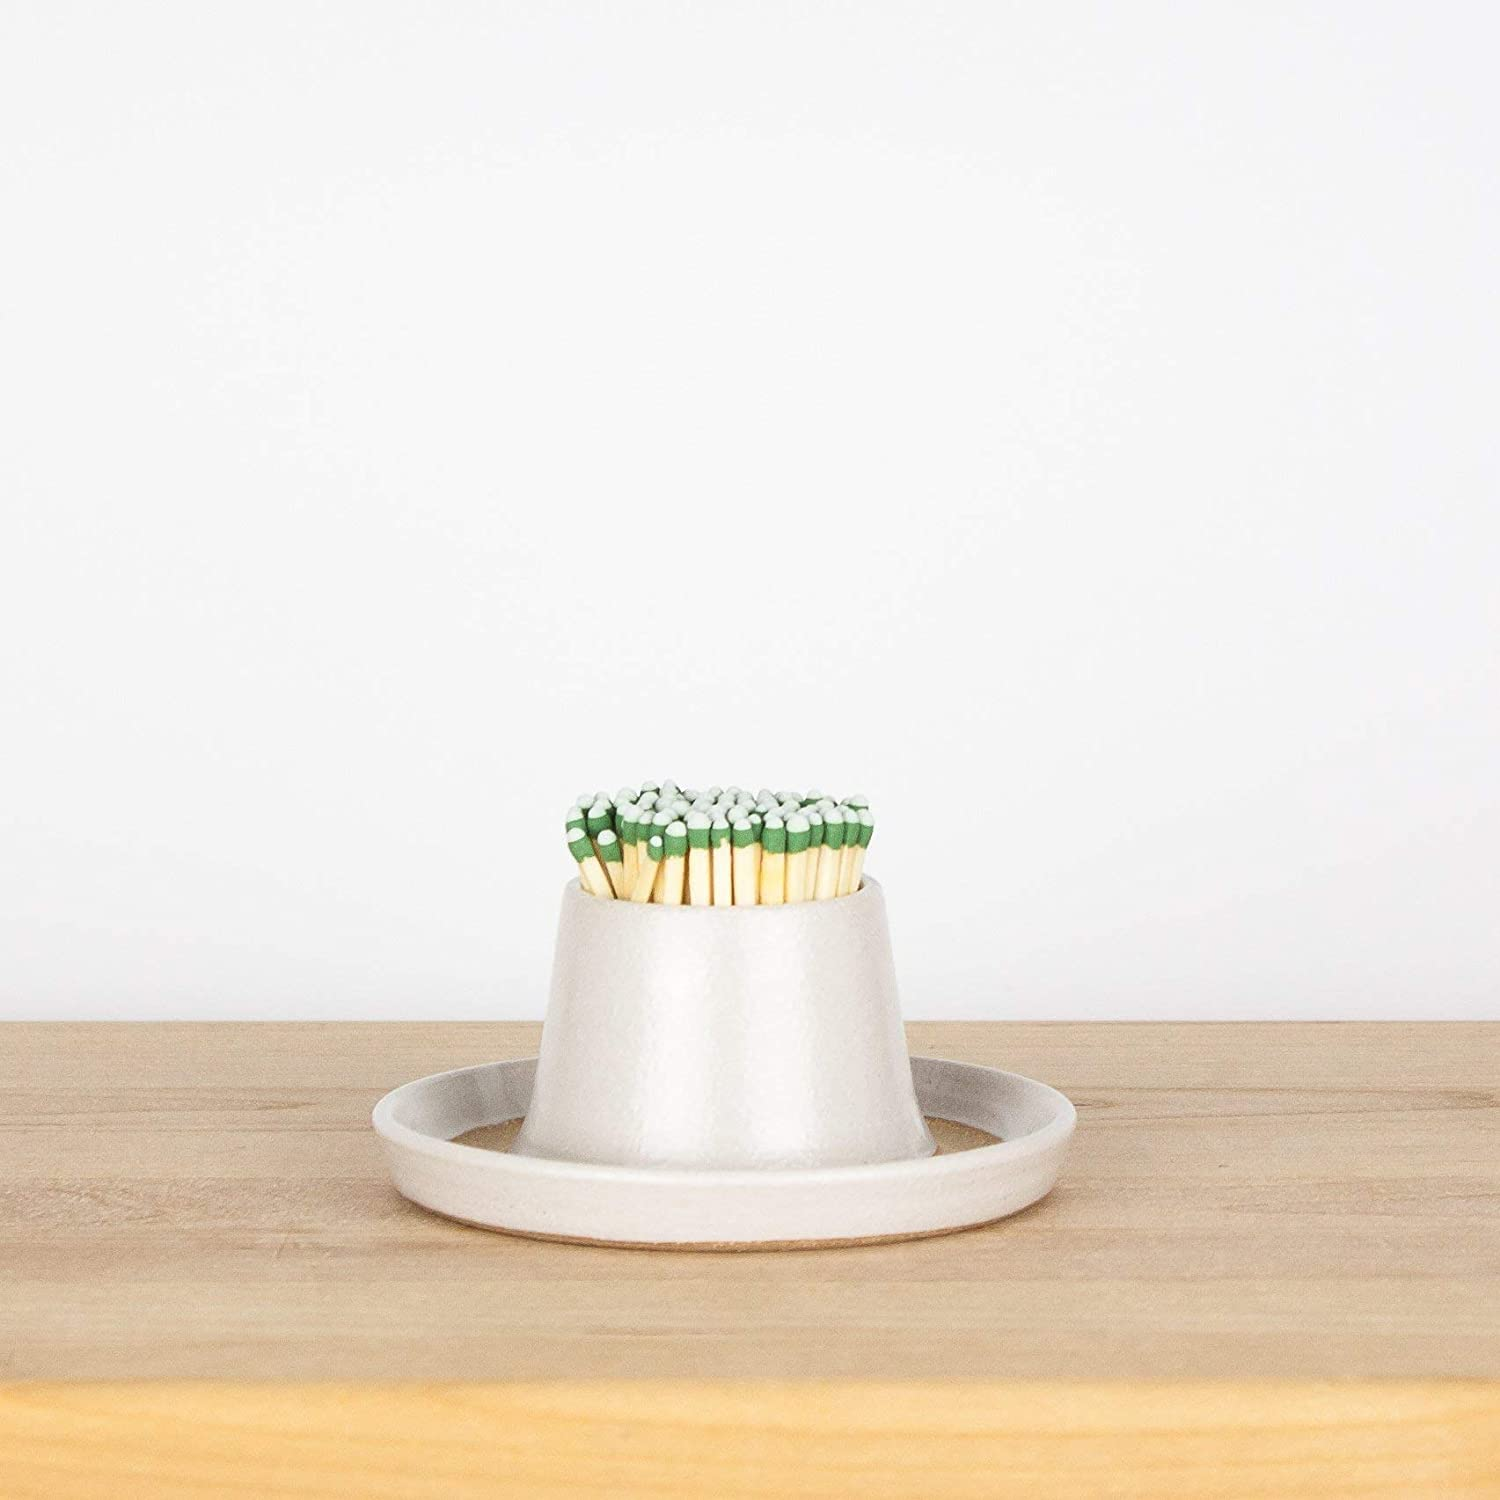 White Match Striker by Barombi Studios | Ceramic Match Holder